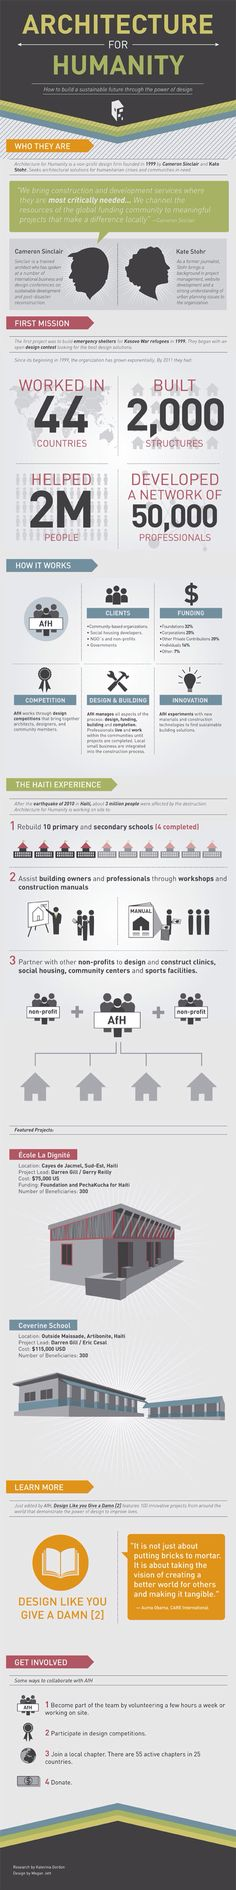 Archdaily Infographic: Architecture for Humanity